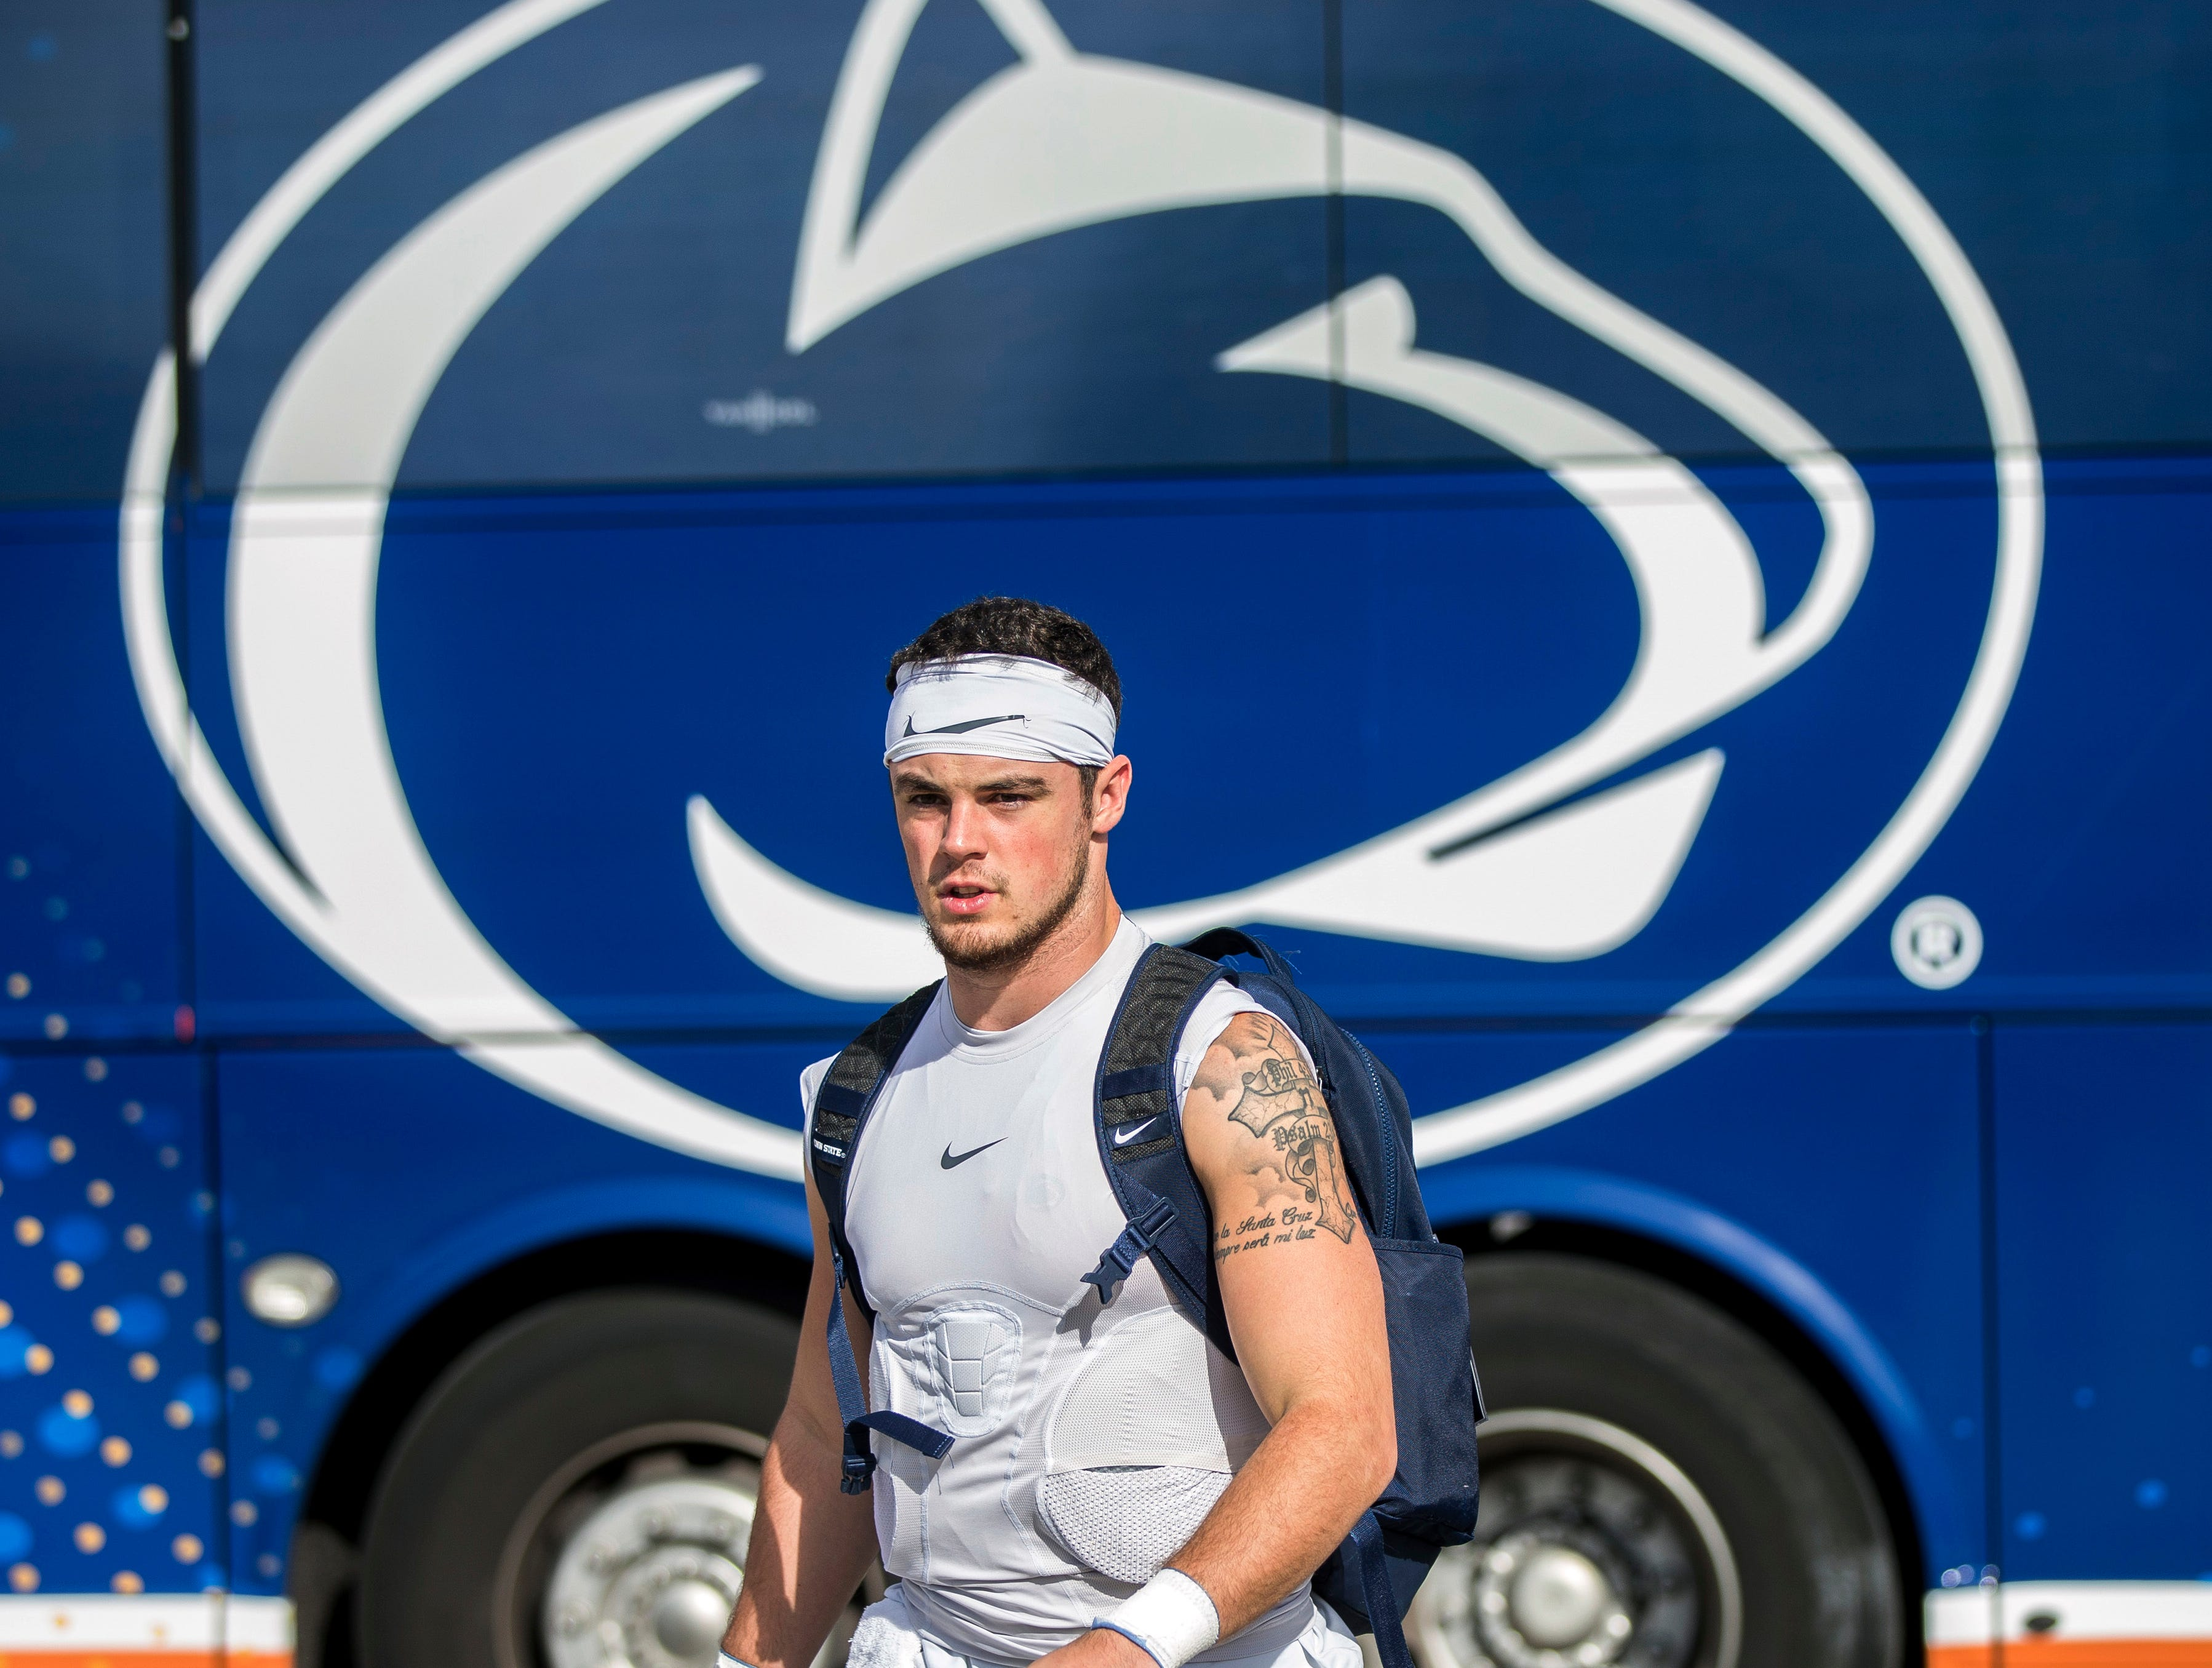 Penn State quarterback Trace McSorley arrive for practice for the Citrus Bowl, Sunday, Dec. 30, 2018 in Orlando, Fla. Penn State plays Kentucky in the Citrus Bowl on Tuesday, Jan. 1, 2019. (Joe Hermitt/The Patriot-News via AP)